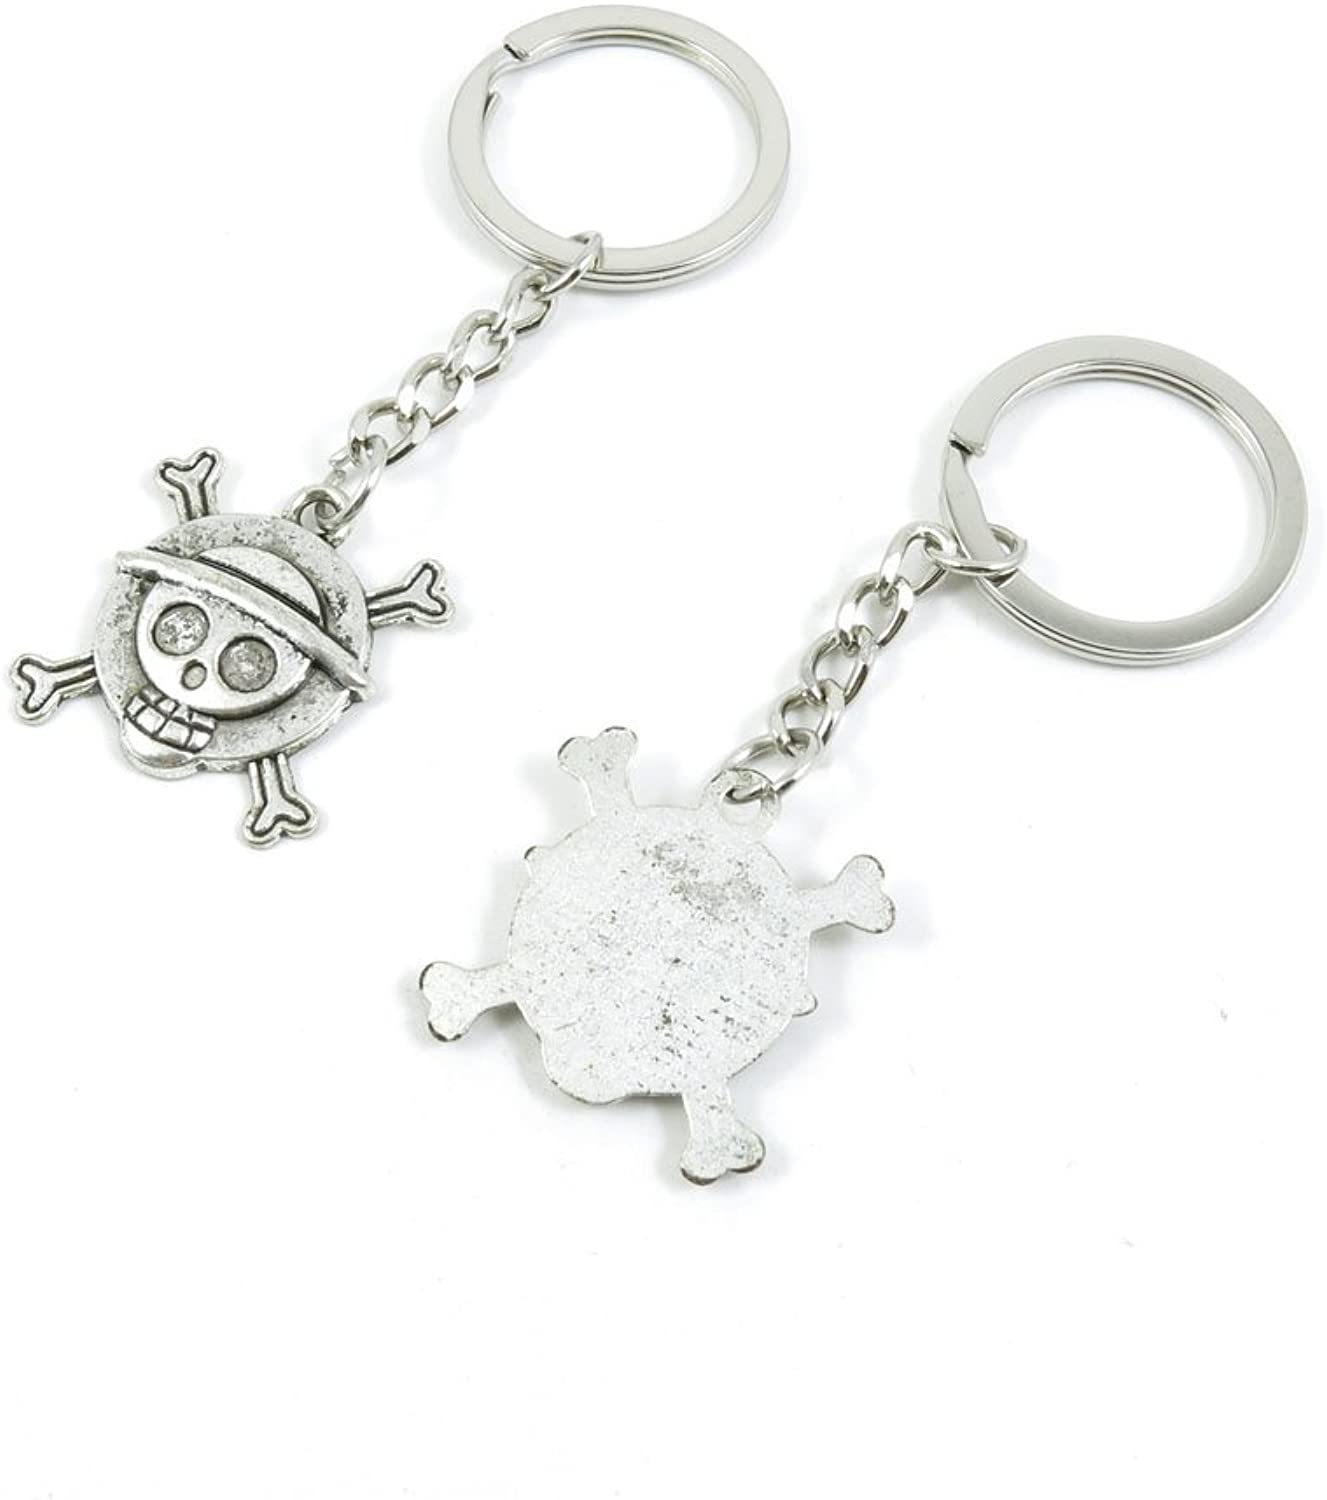 100 Pieces Keychain Keyring Door Car Key Chain Ring Tag Charms Bulk Supply Jewelry Making Clasp Findings A7AS7W Skull Shield